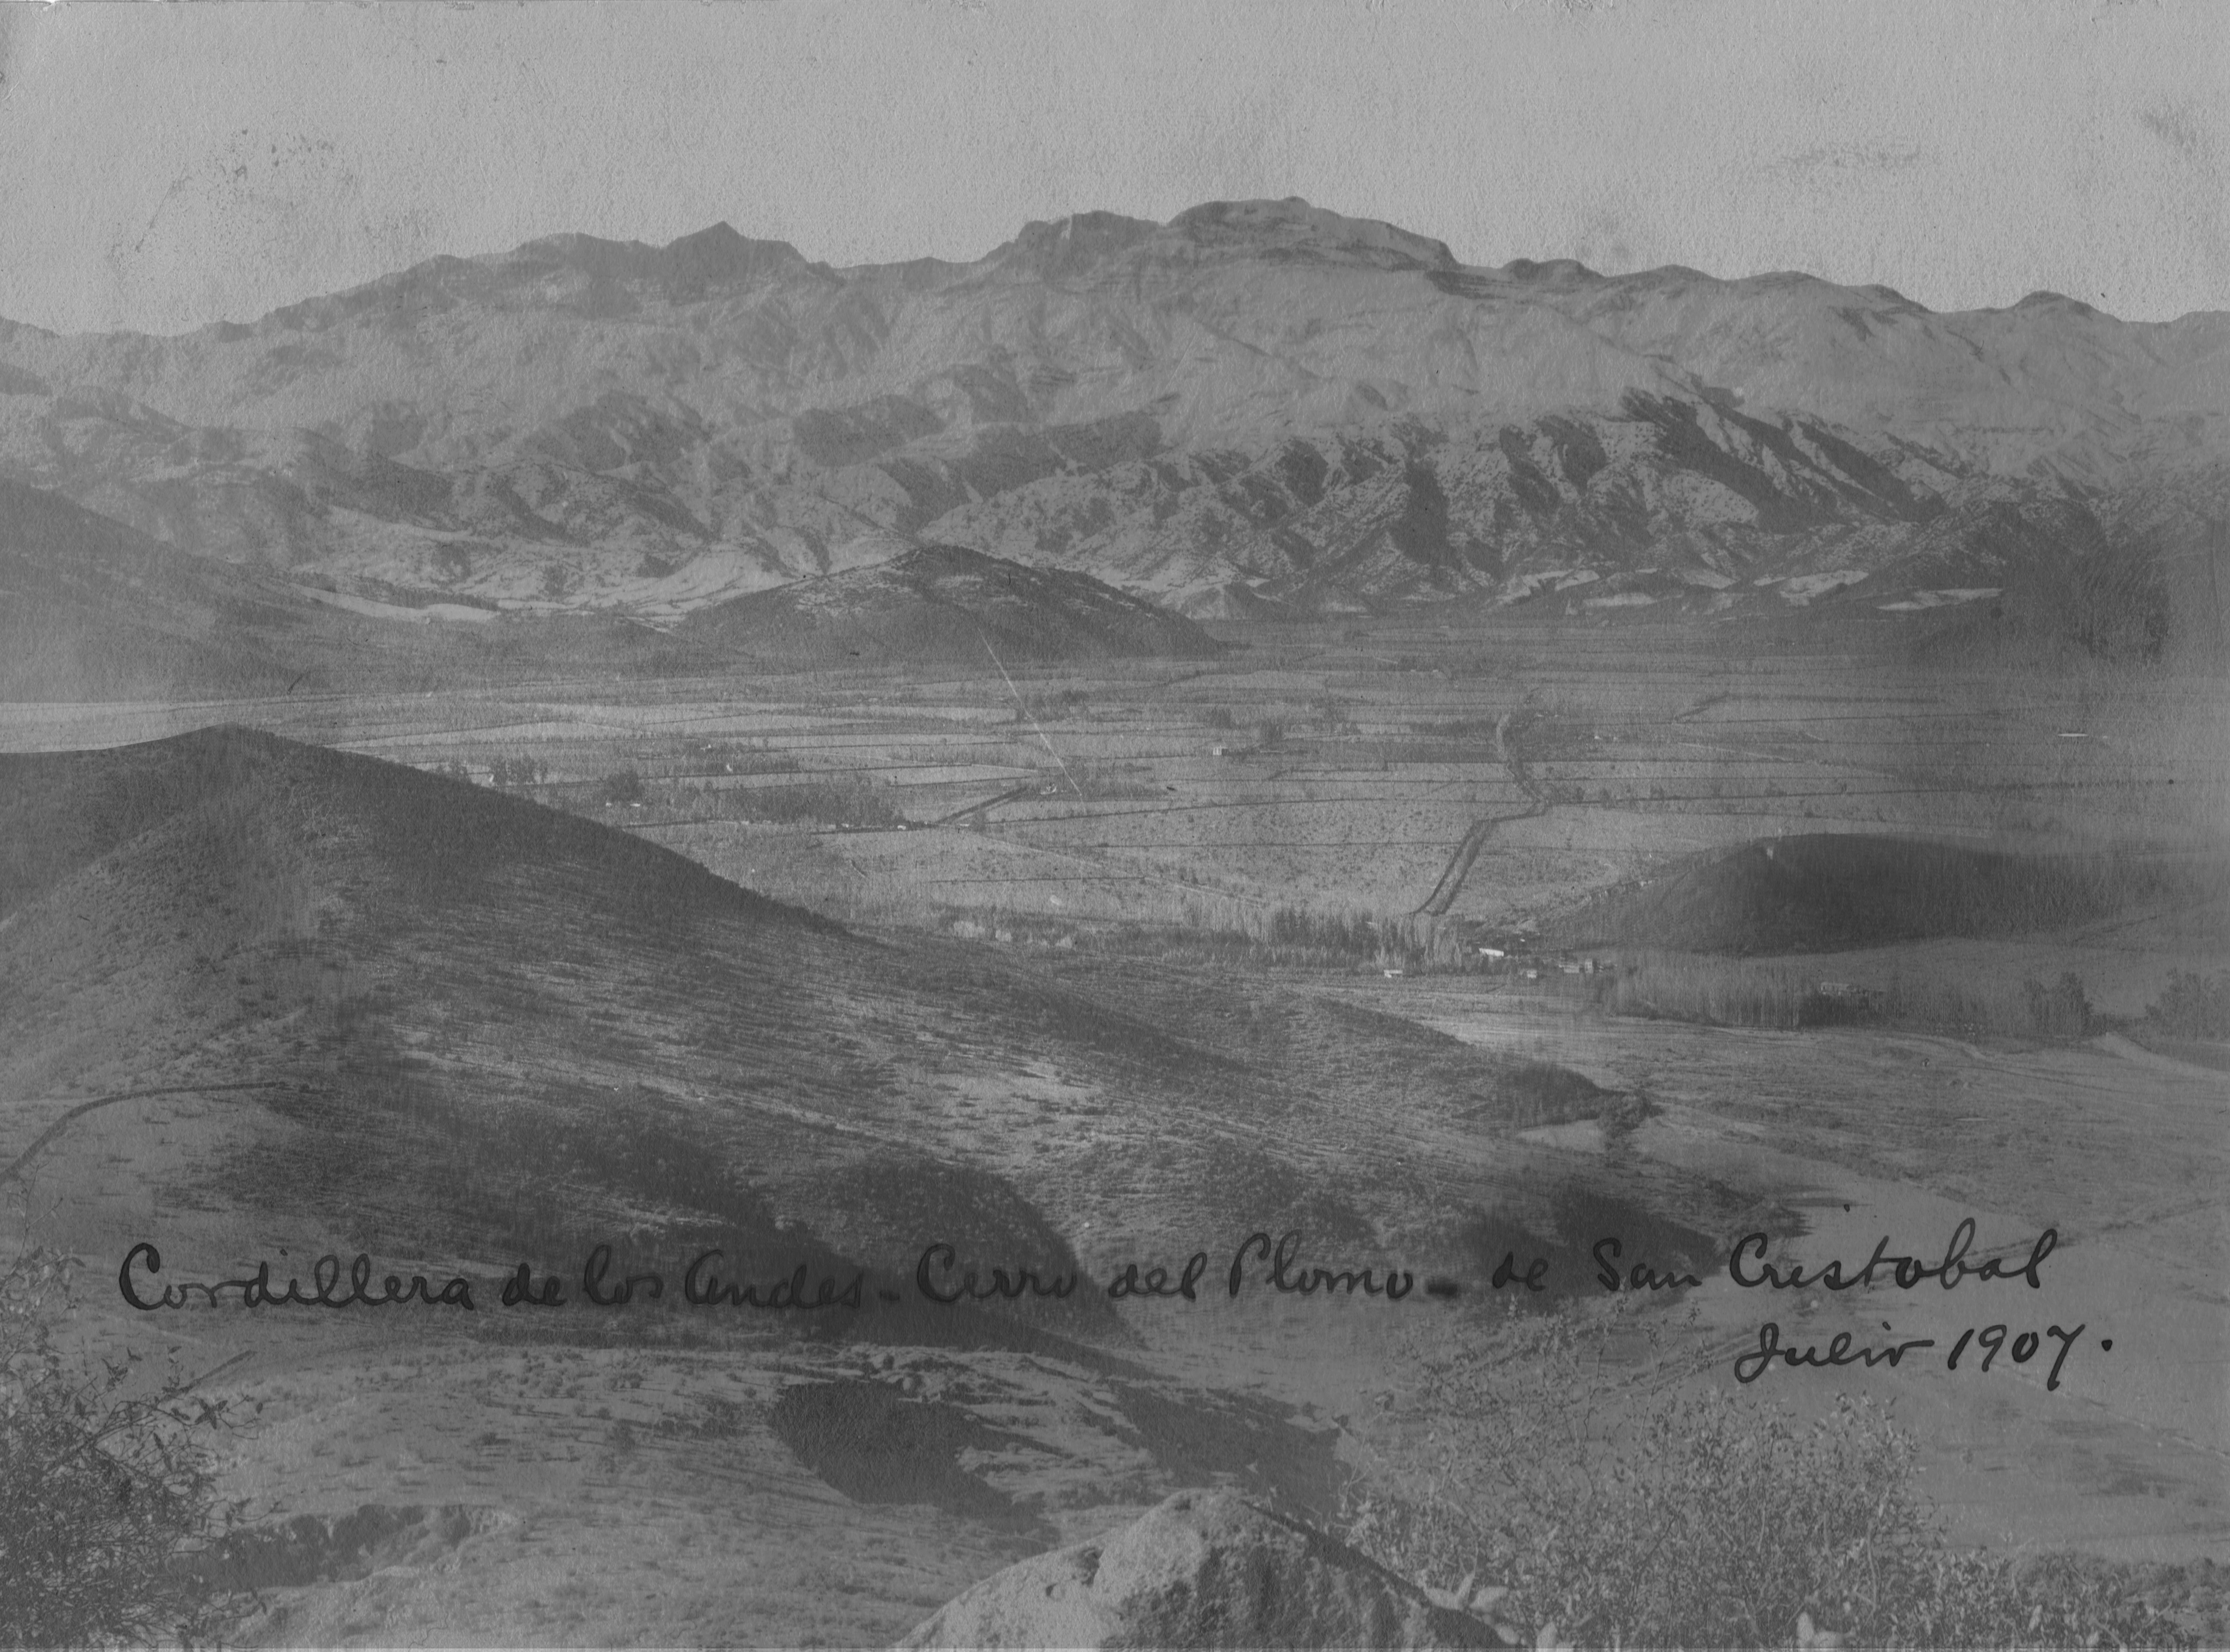 Enterreno - Fotos históricas de chile - fotos antiguas de Chile - Panorámica de Santiago en 1907